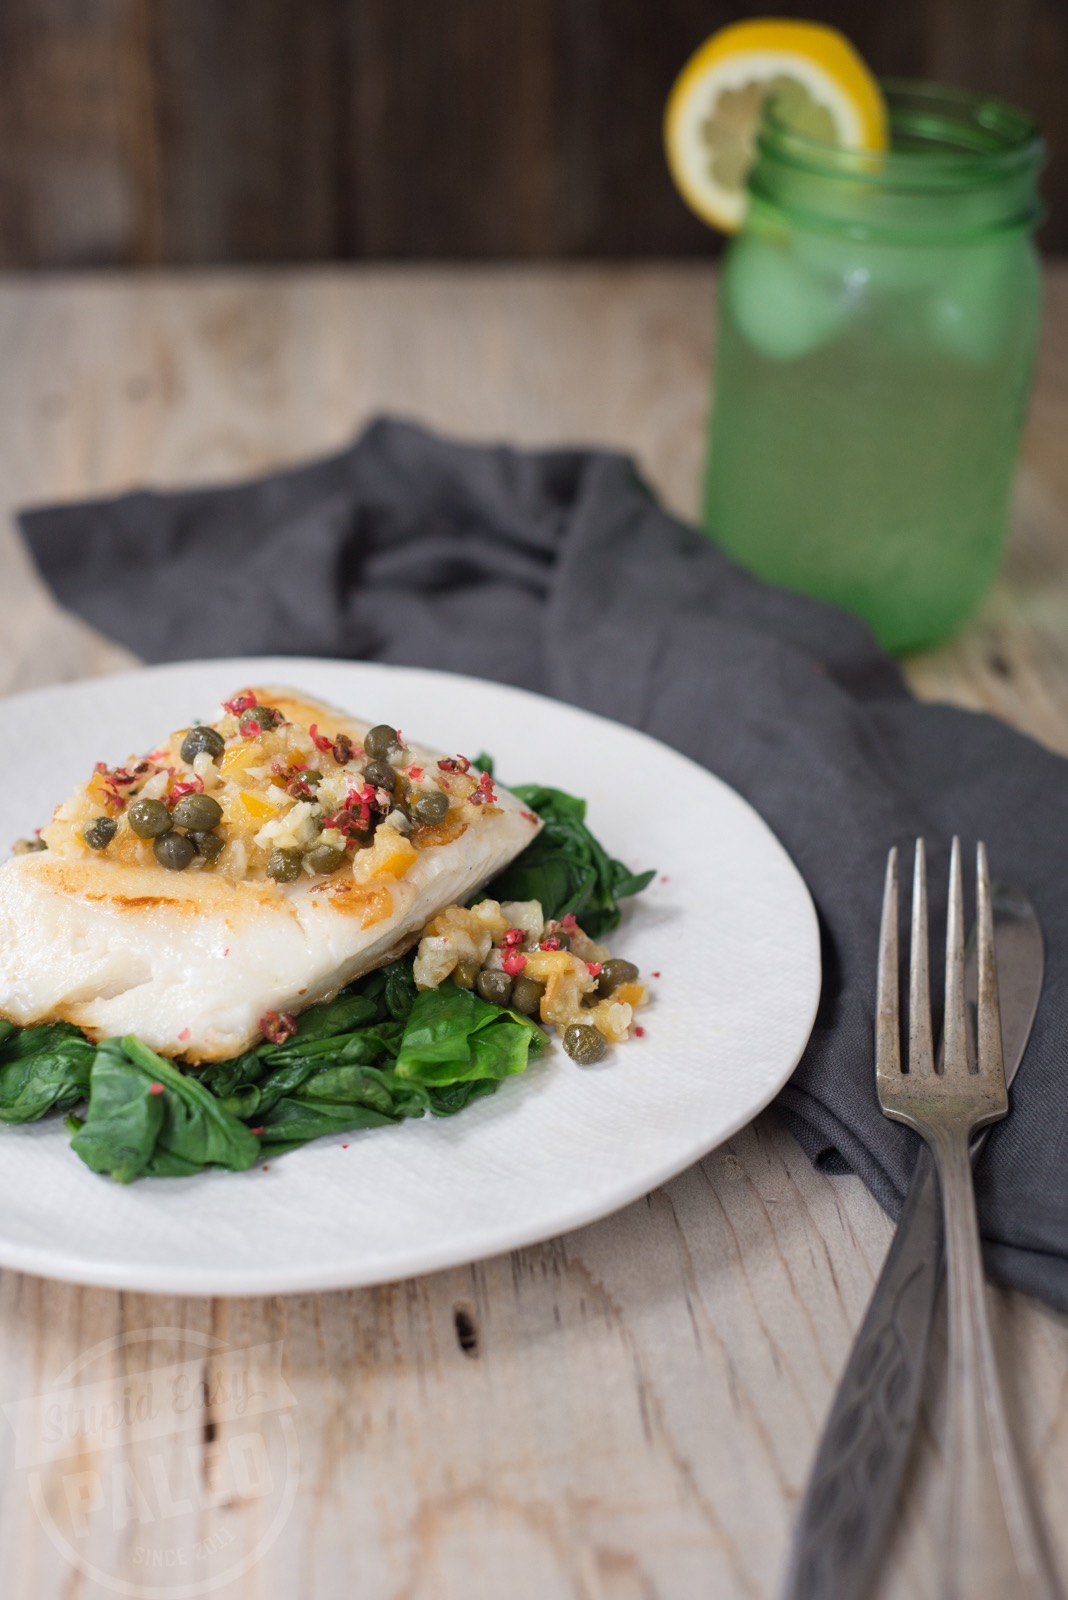 Make this delicious Pan-Fried Haddock with Lemon & Capers Recipe for a quick weeknight dinner. Paleo & Whole30-friendly! | StupidEasyPaleo.com